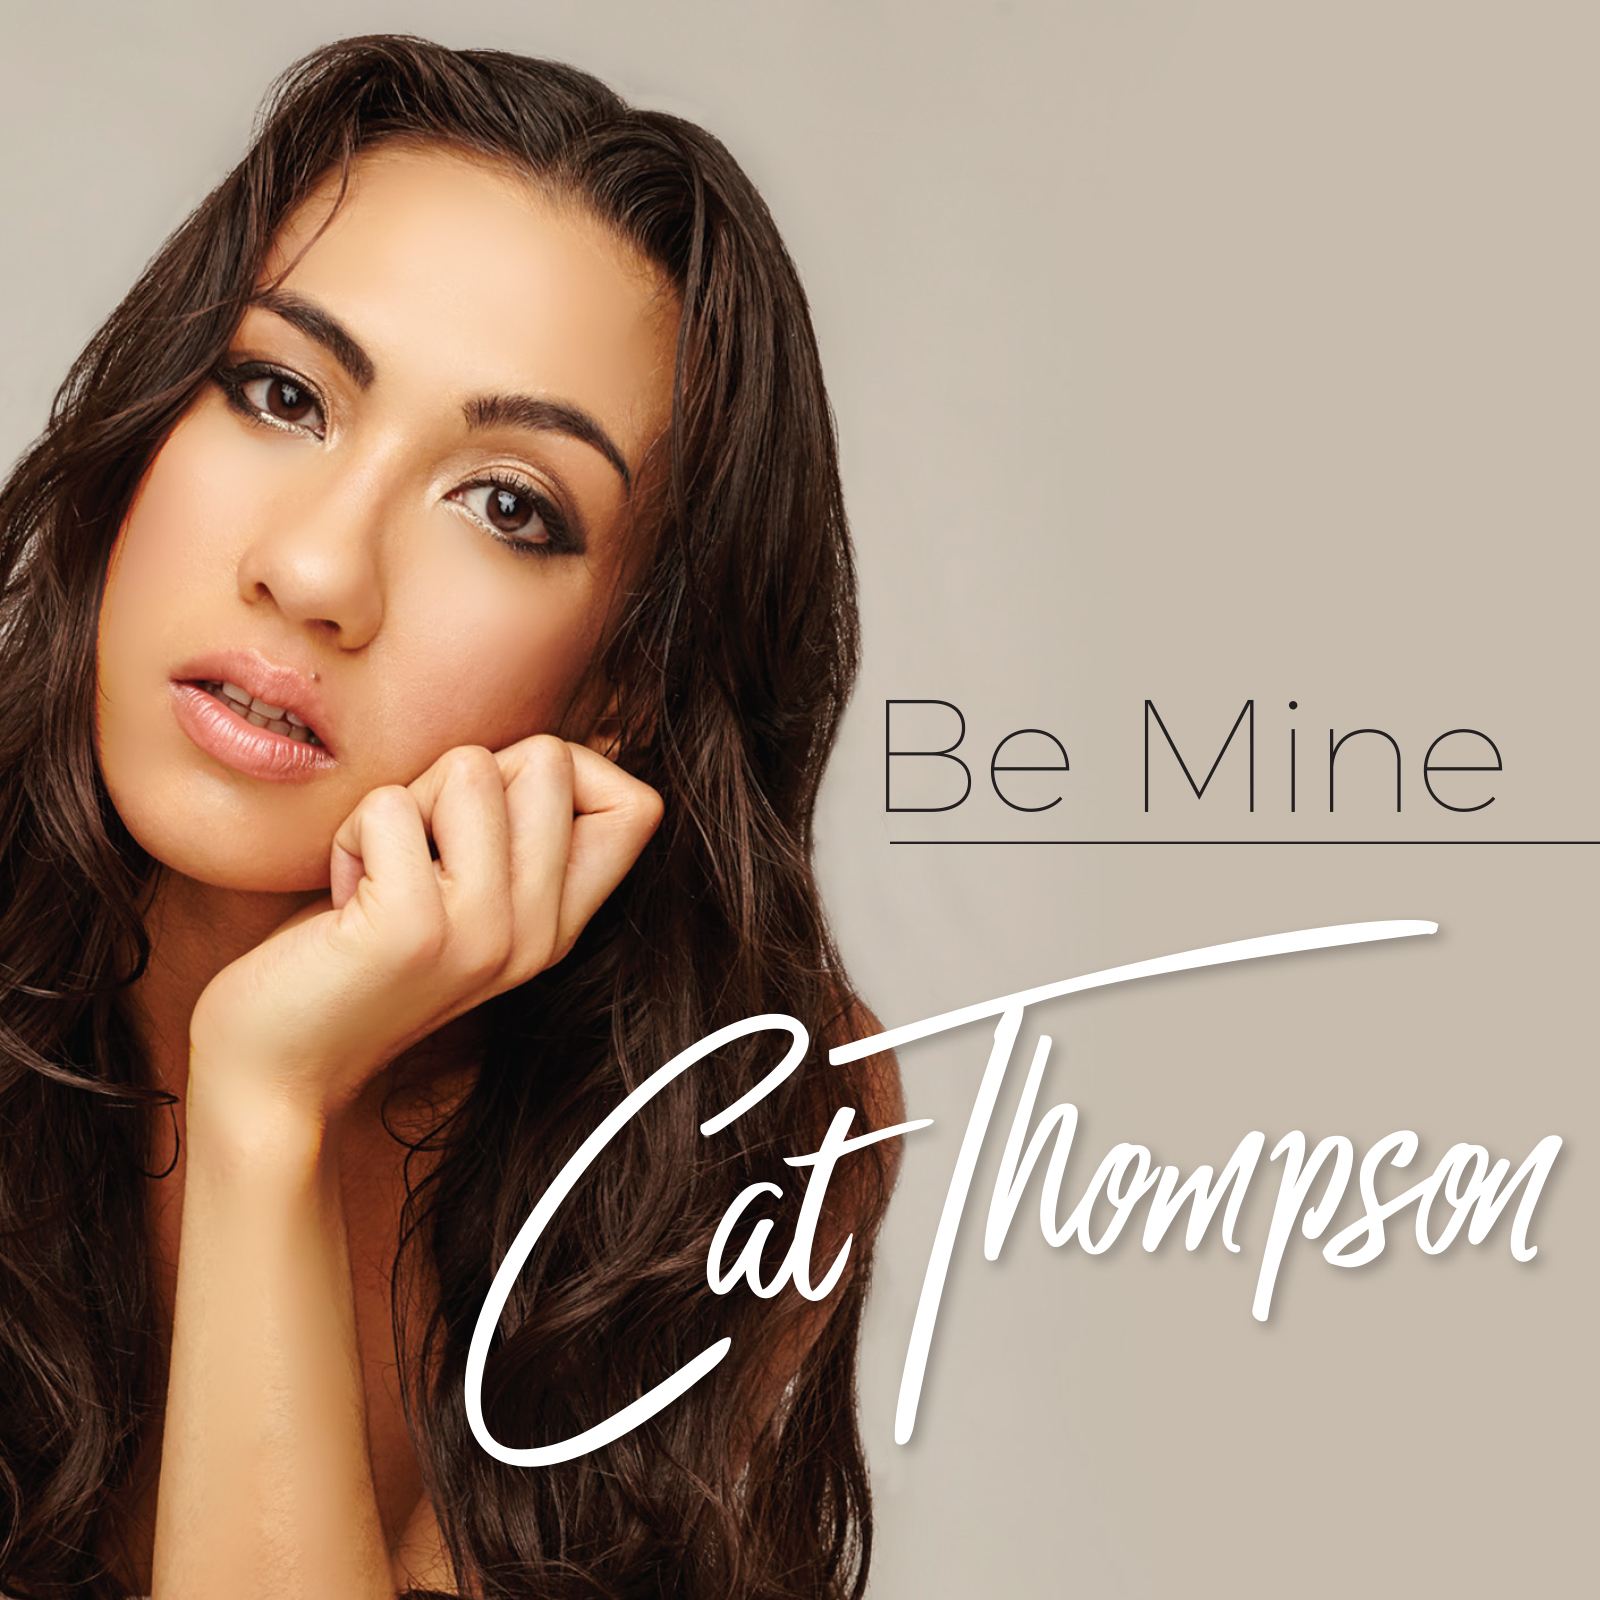 Cat Thompson